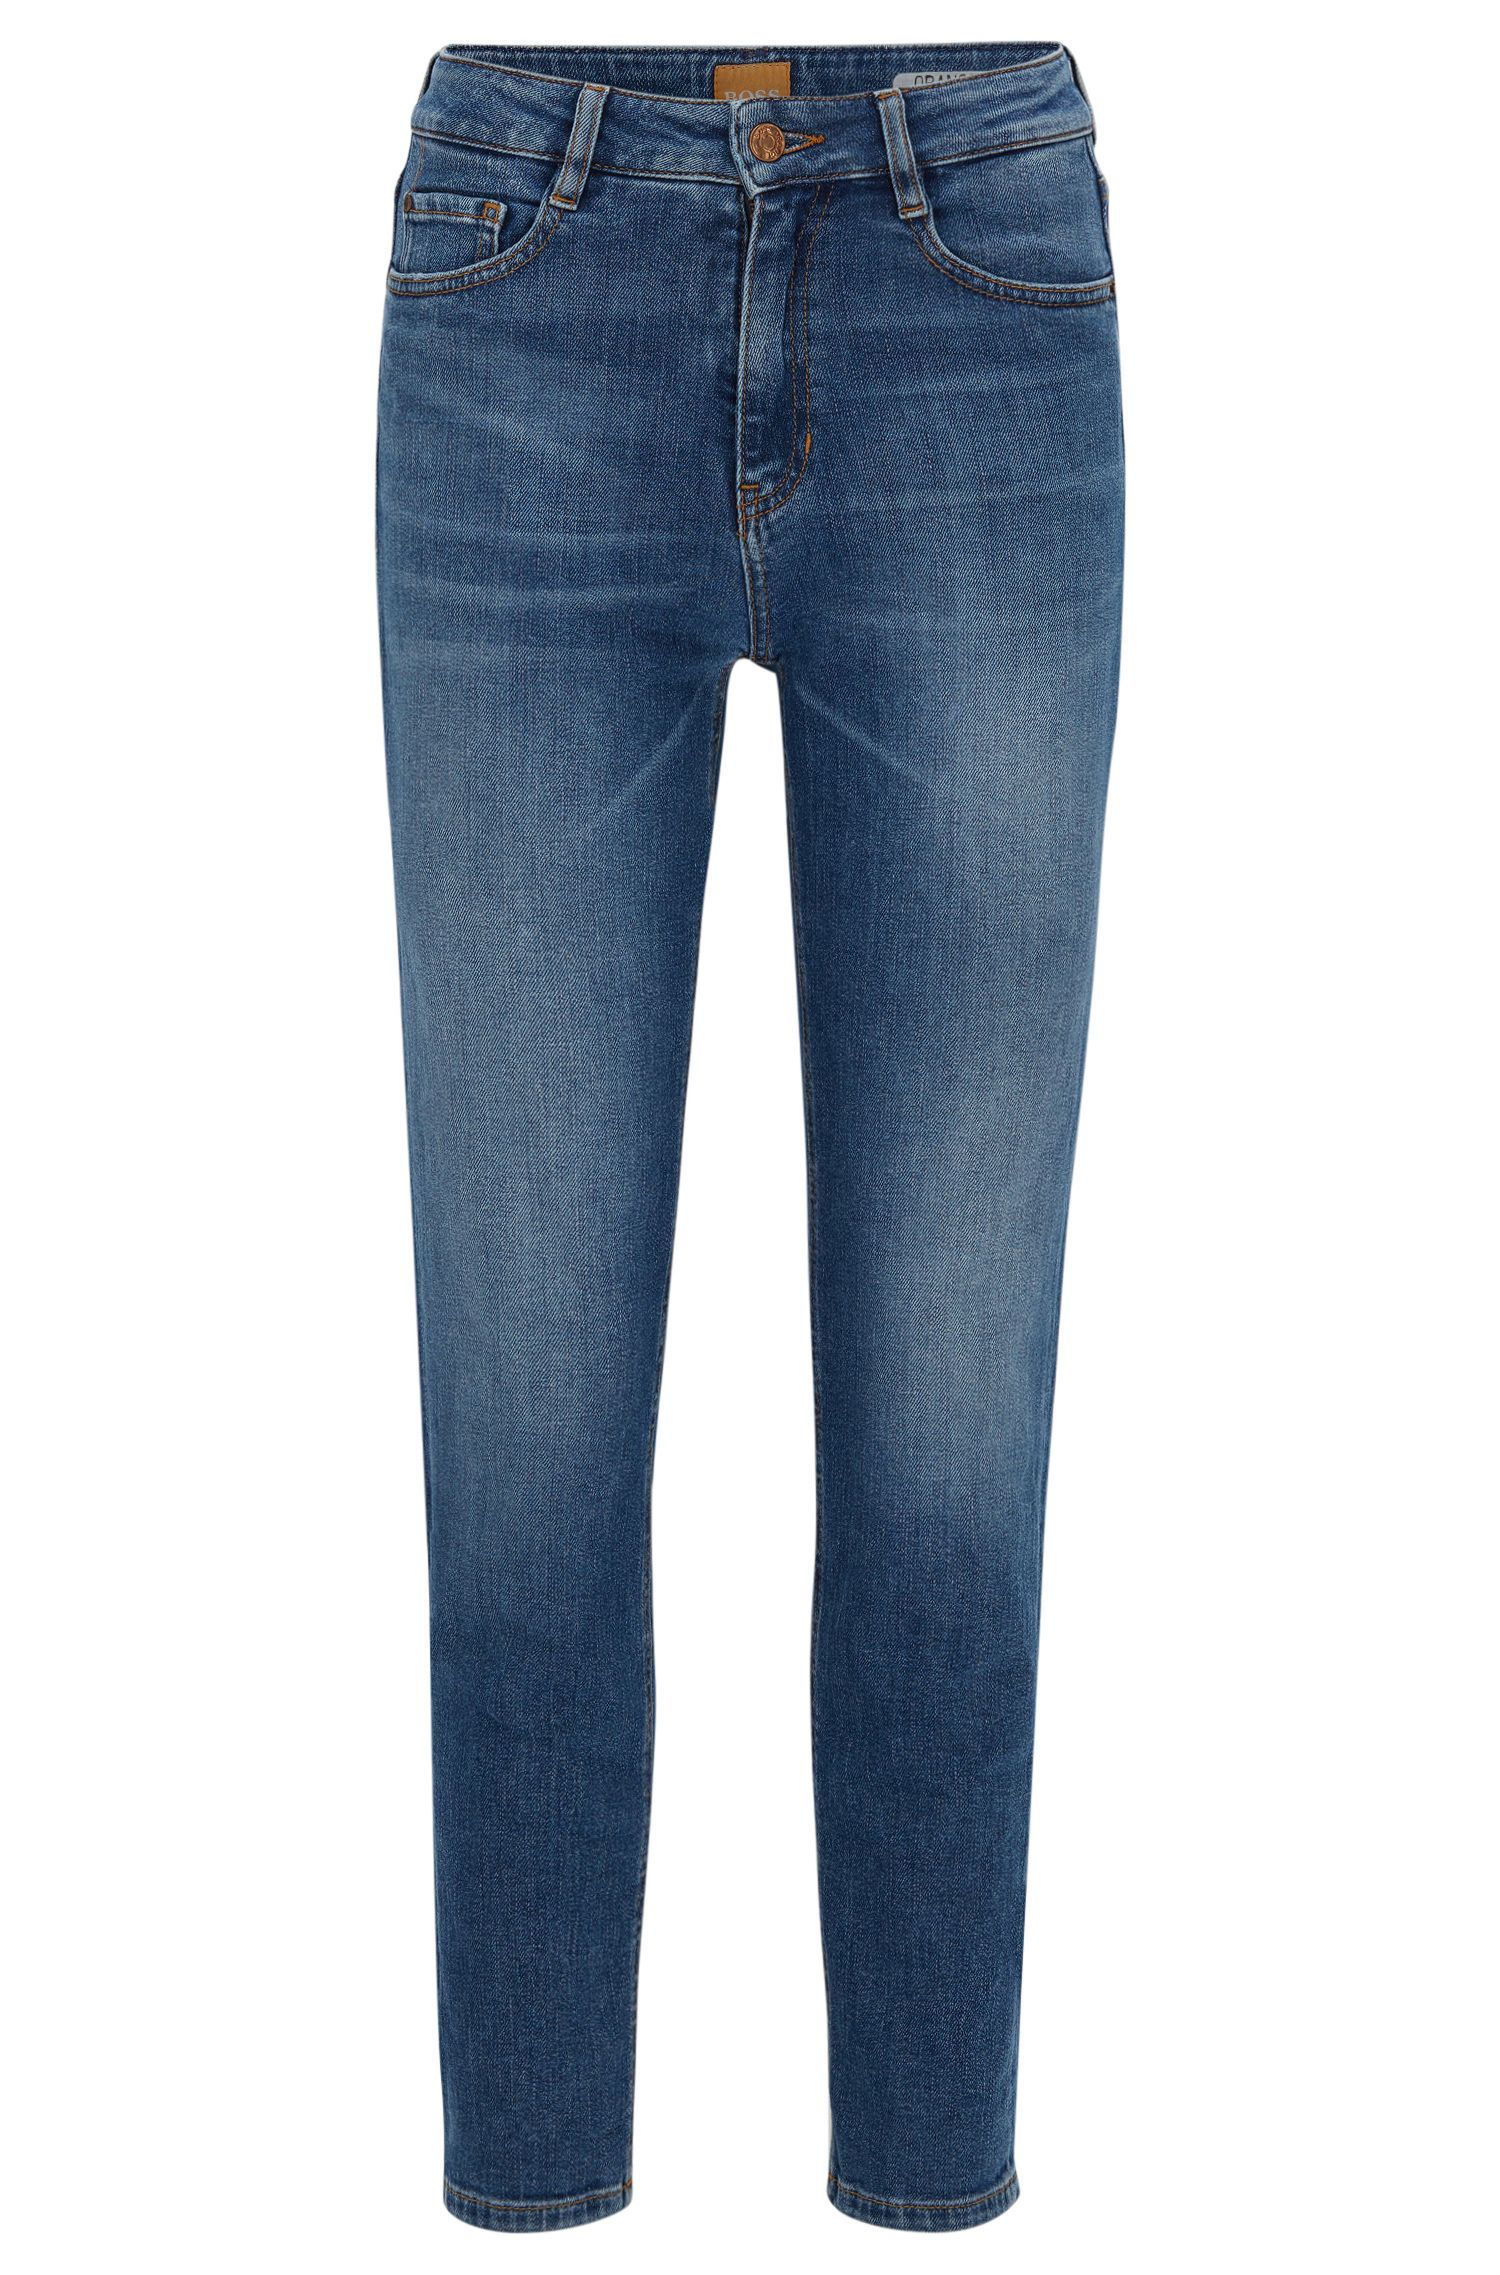 Tapered-fit jeans in slub stretch denim